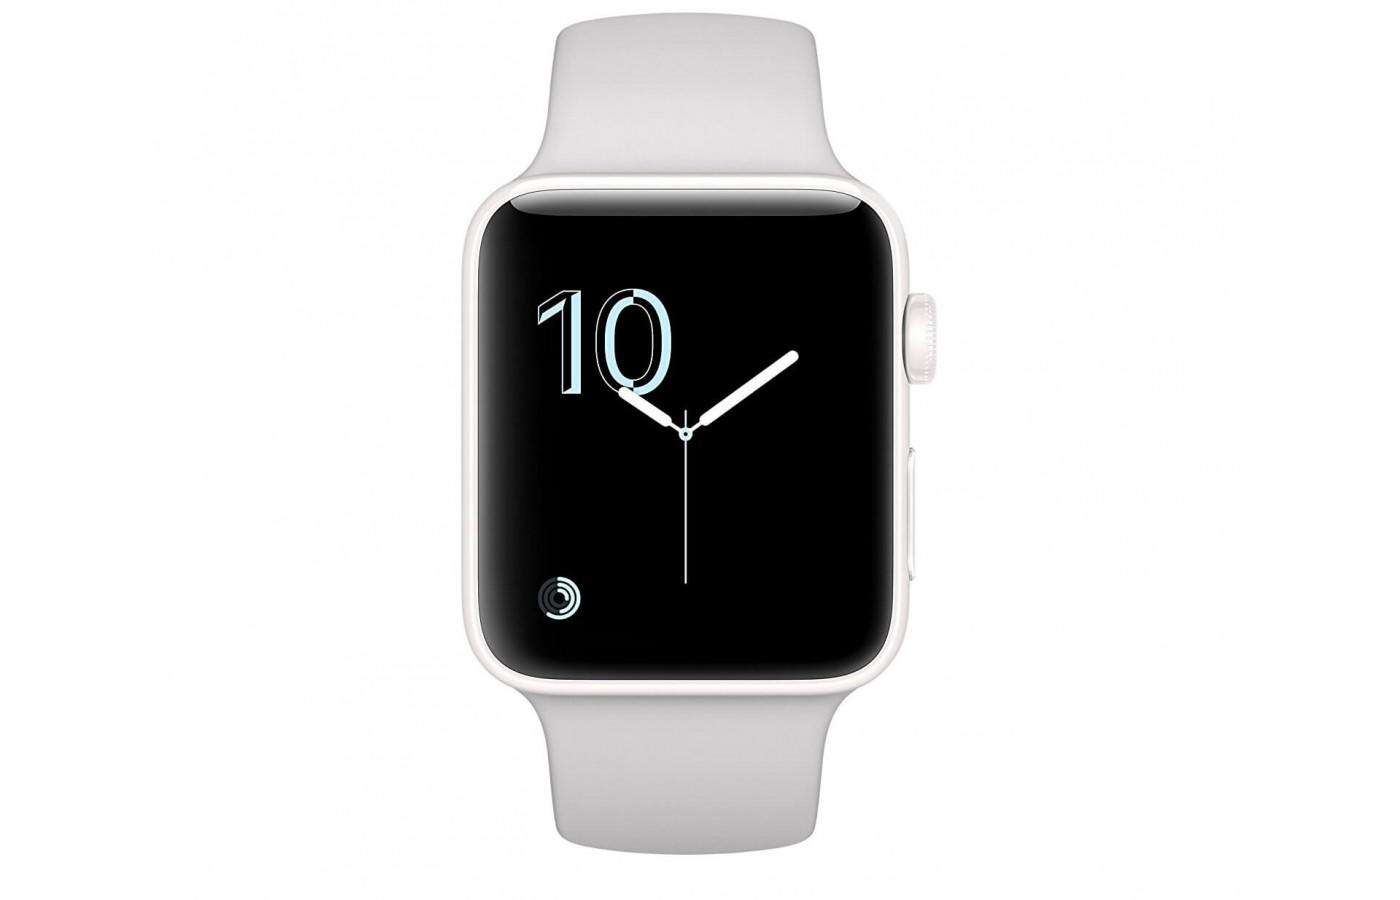 Apple Watch Edition Series 2 watch face is customizable